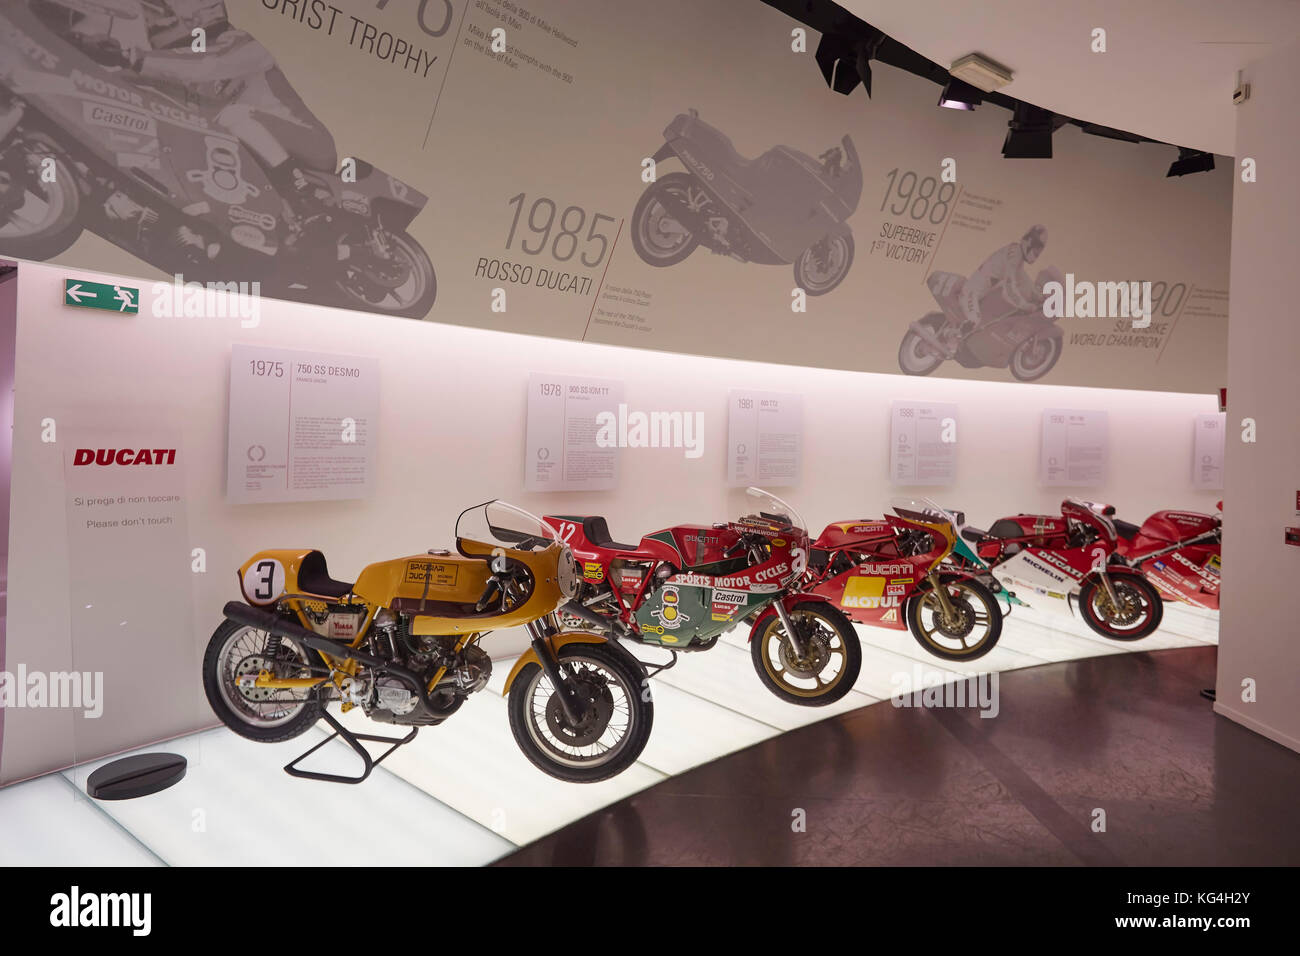 Motorcycles on display at the Ducati factory museum, Bologna, Italy. - Stock Image